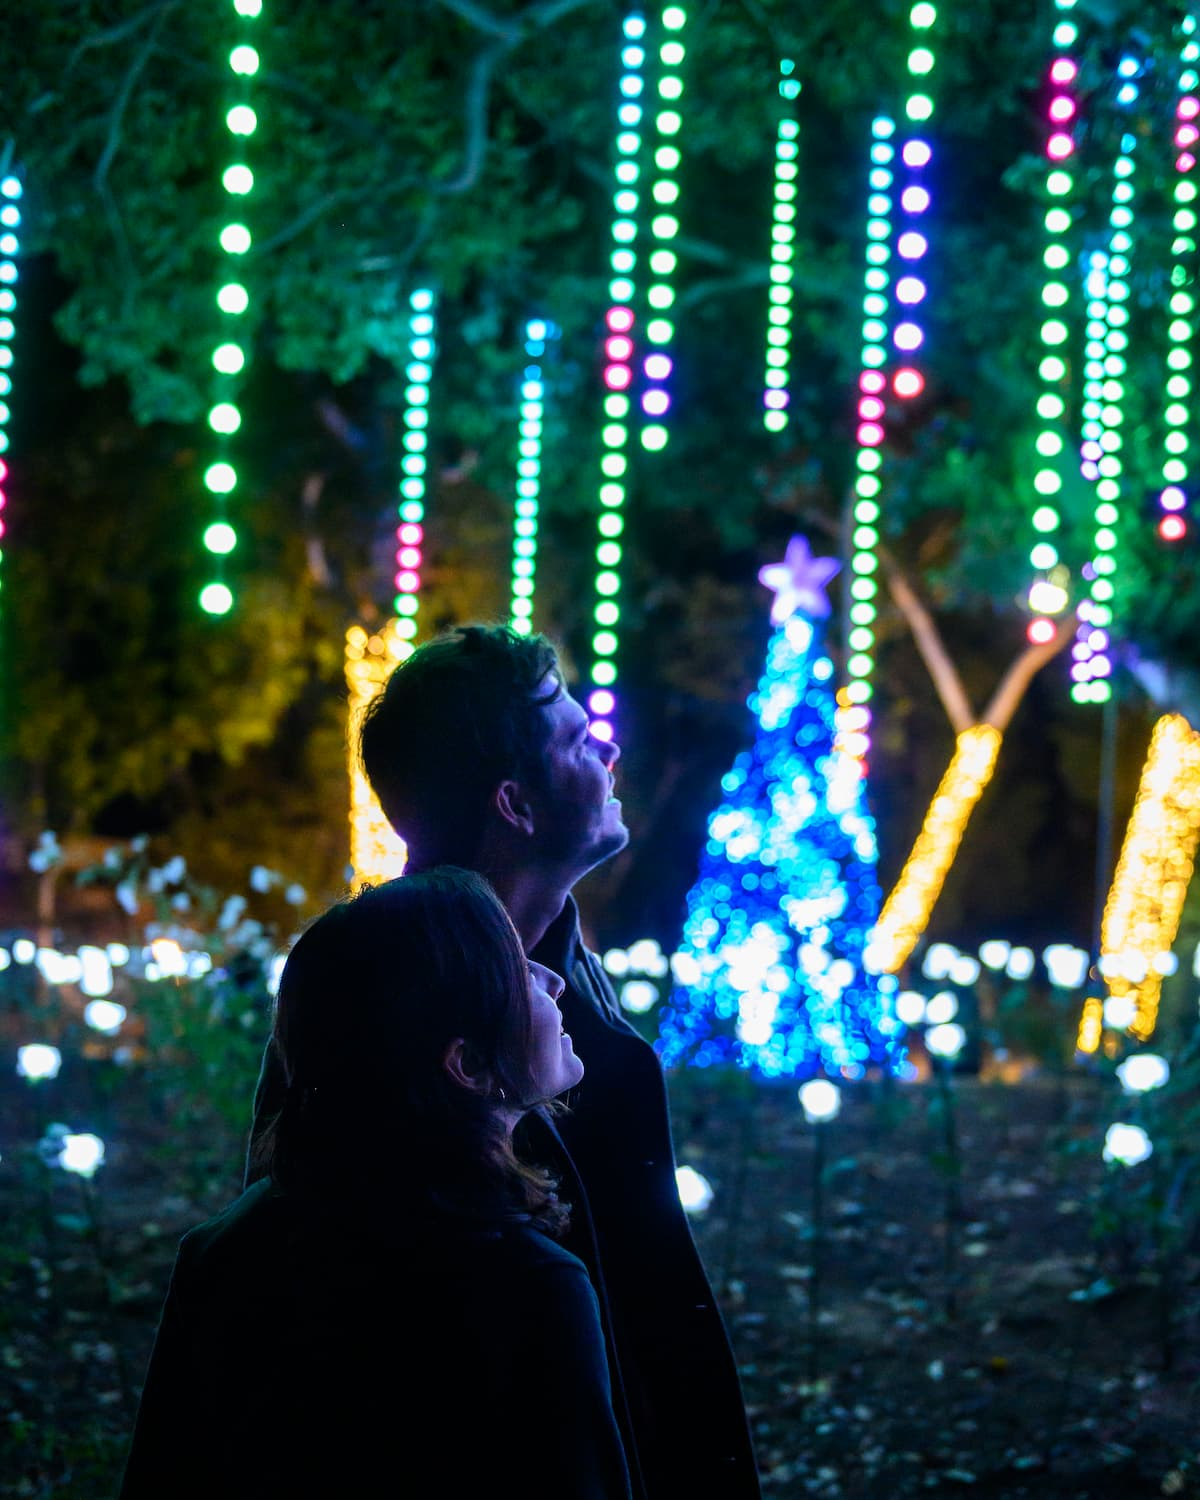 Silhouette of person looking up with holiday lights and tree in background